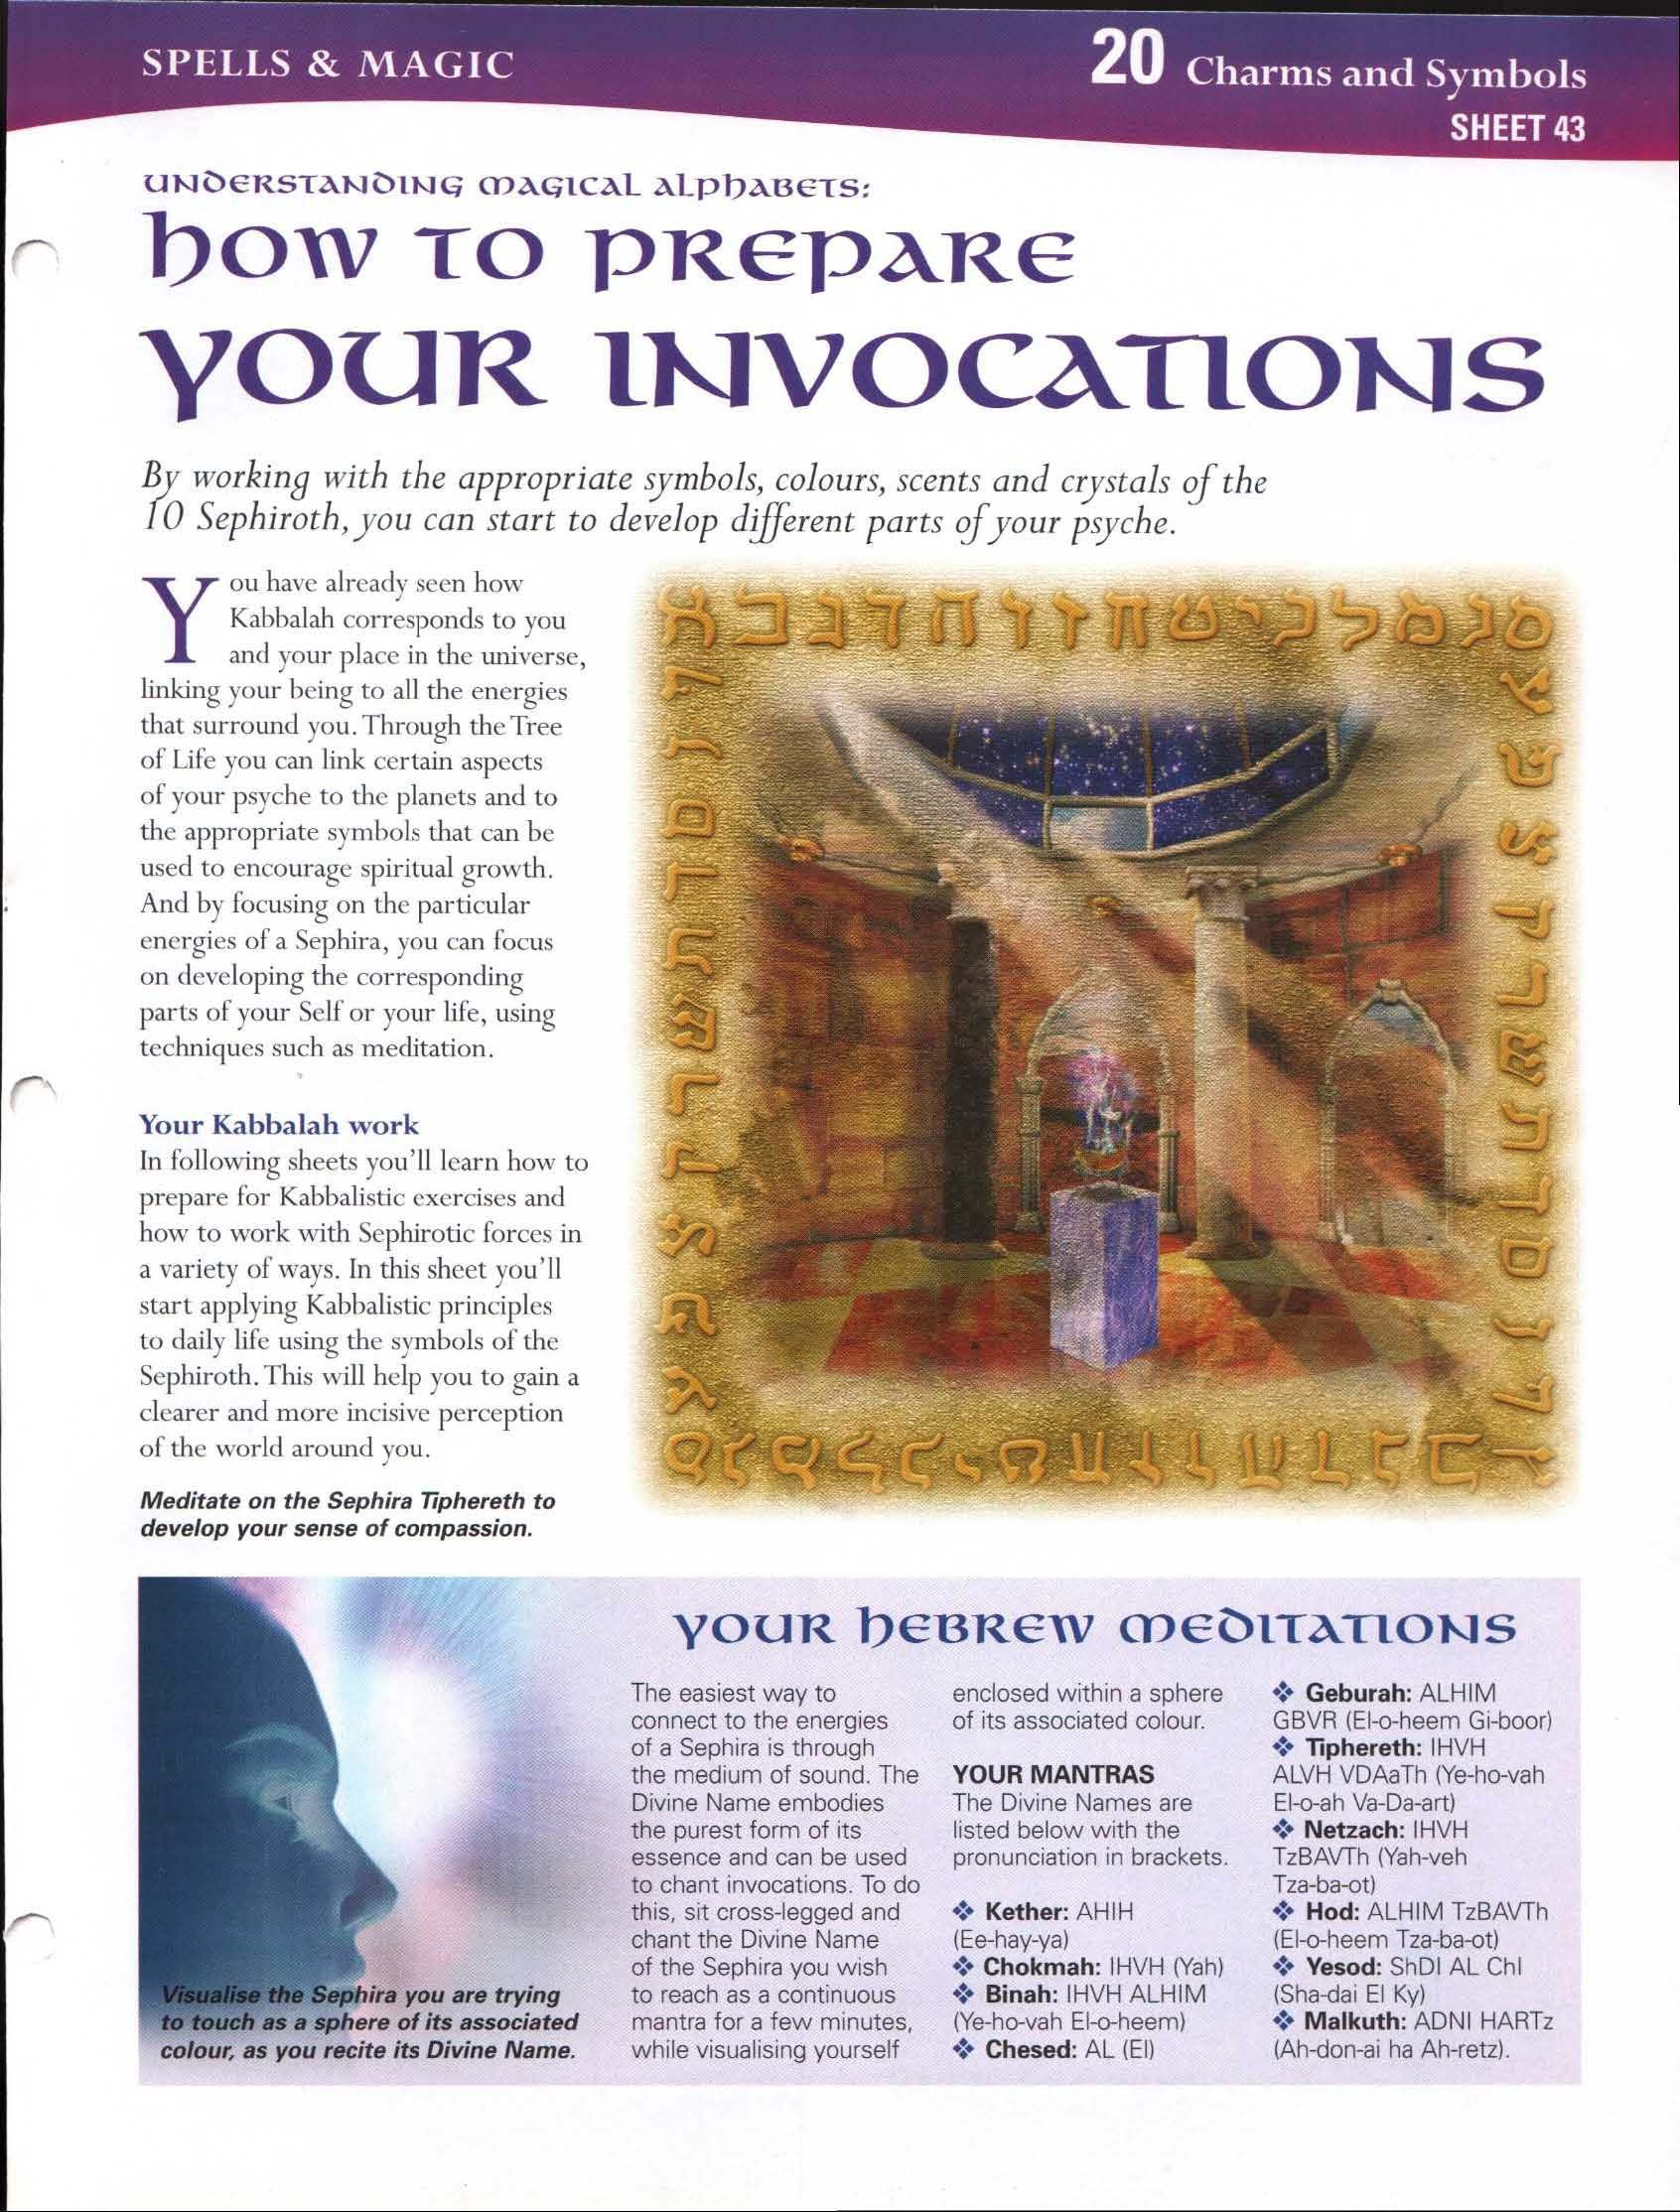 Understanding Magickal Alphabets: How to Prepare Your Invocations